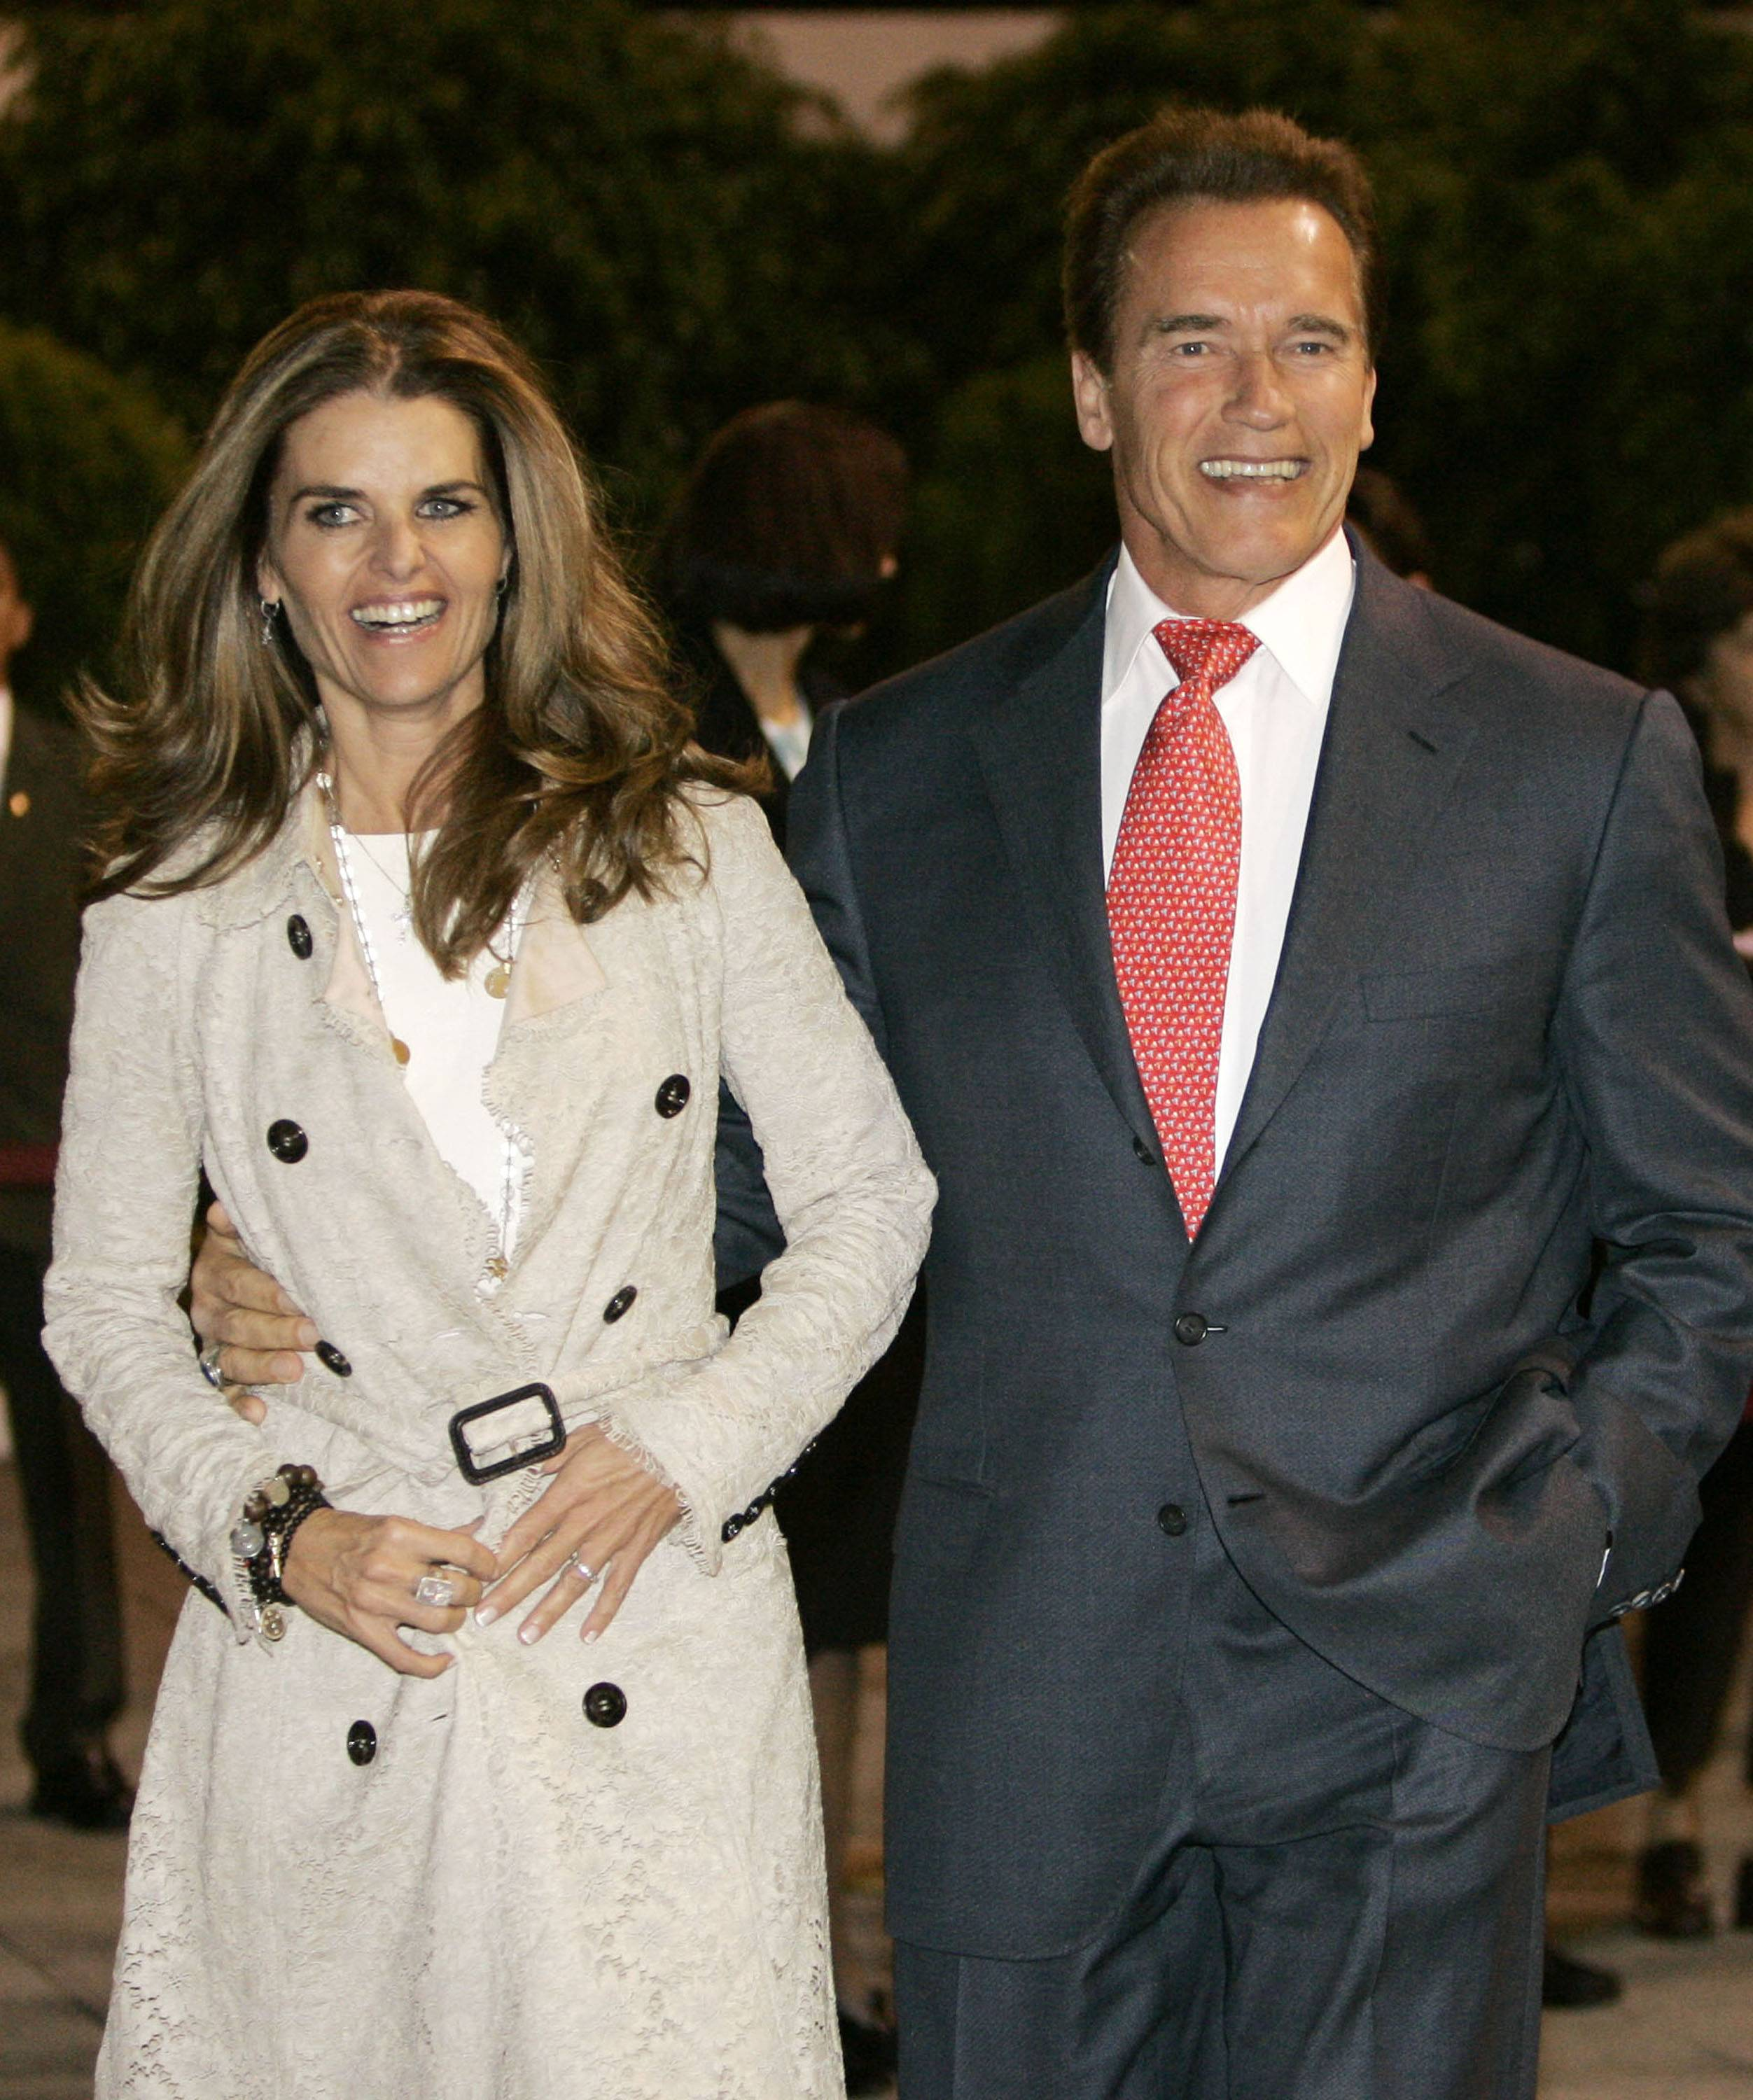 Arnold Schwarzenegger is indicating he does not want to pay his wife Maria Shriver spousal support following their upcoming divorce.